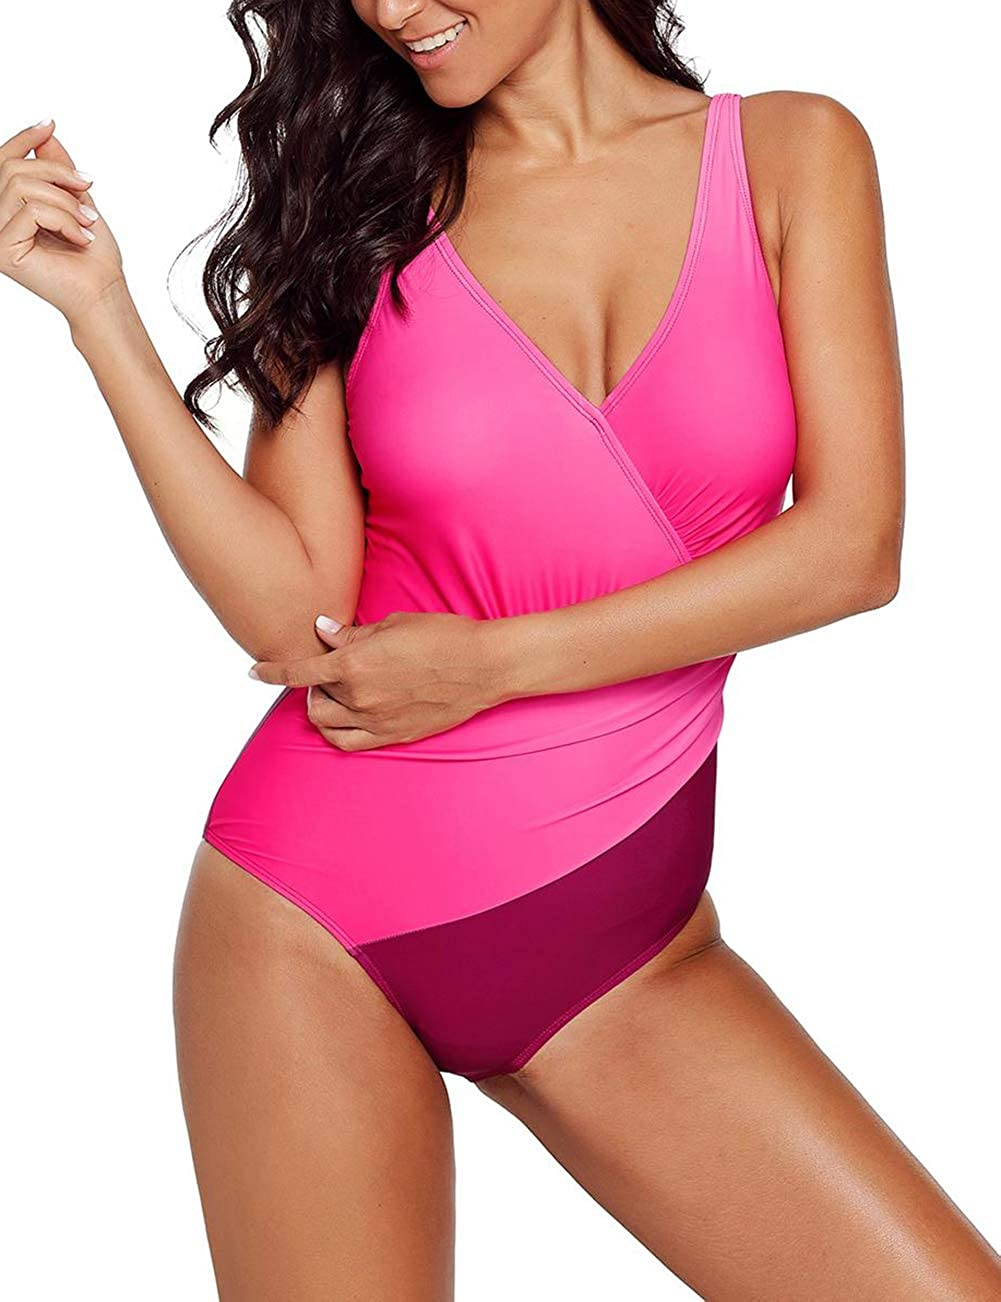 Bsubseach Tummy Control One Piece Swimsuits Women Bathing Suit Ruched Beach Swimwear